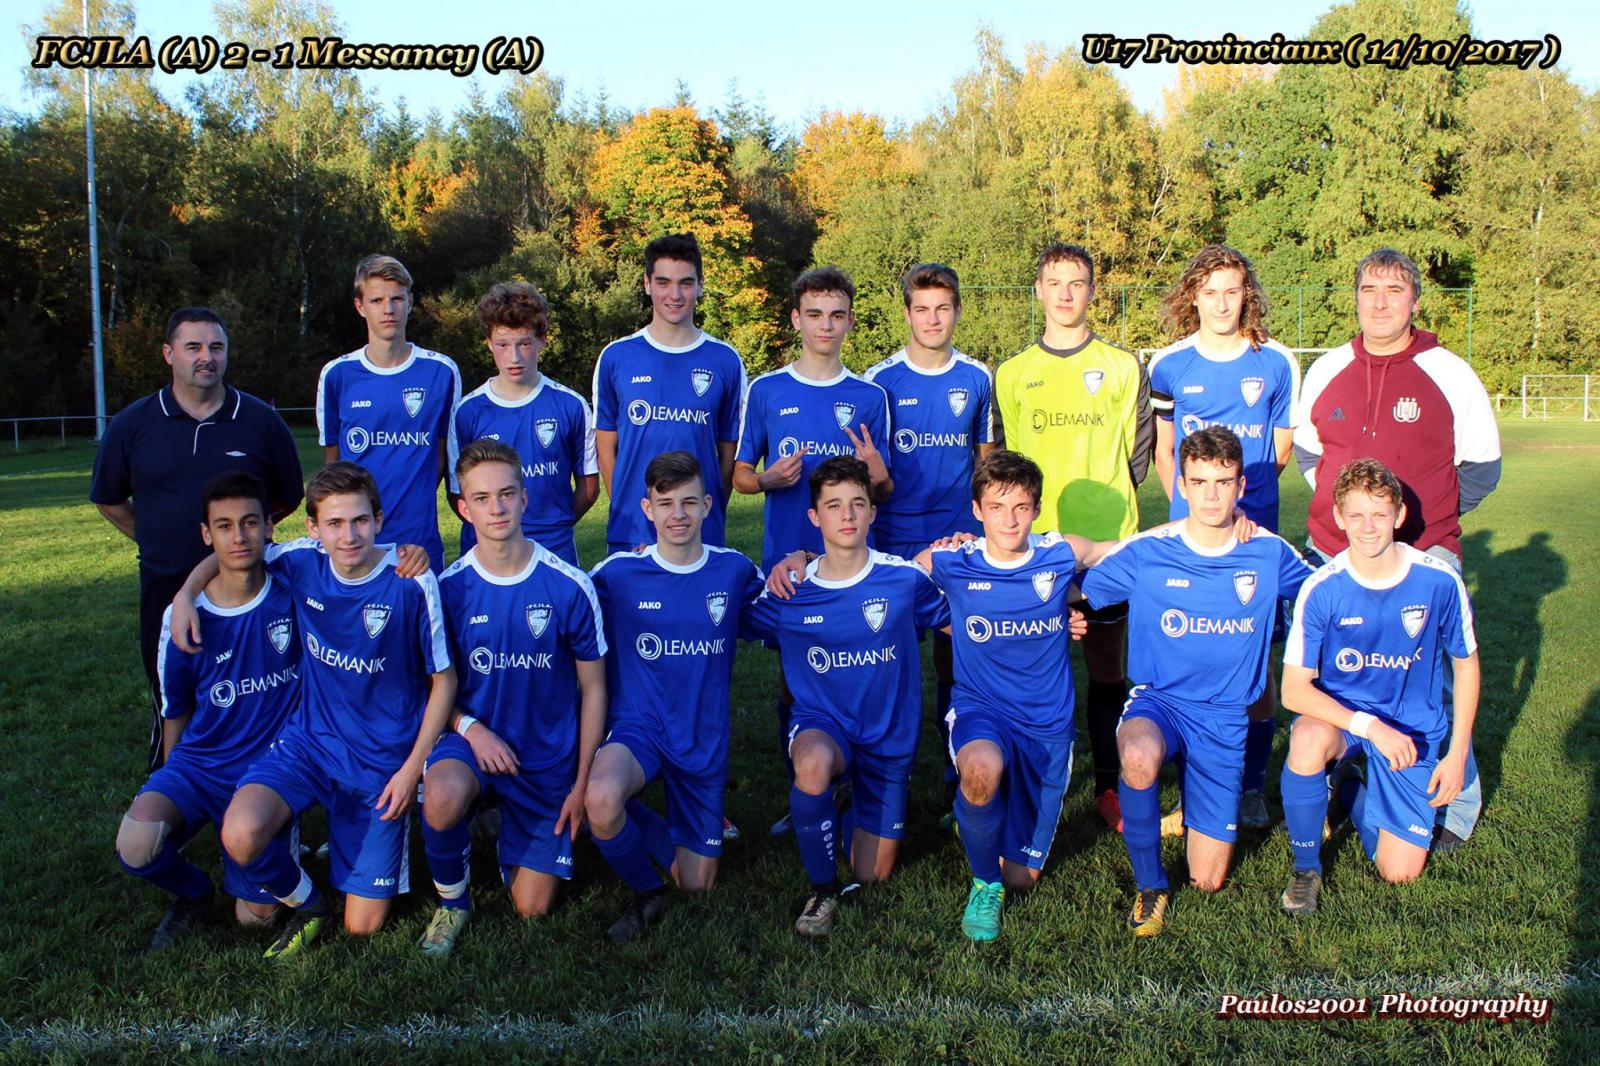 U17 Provinciaux - Football Club Arlon